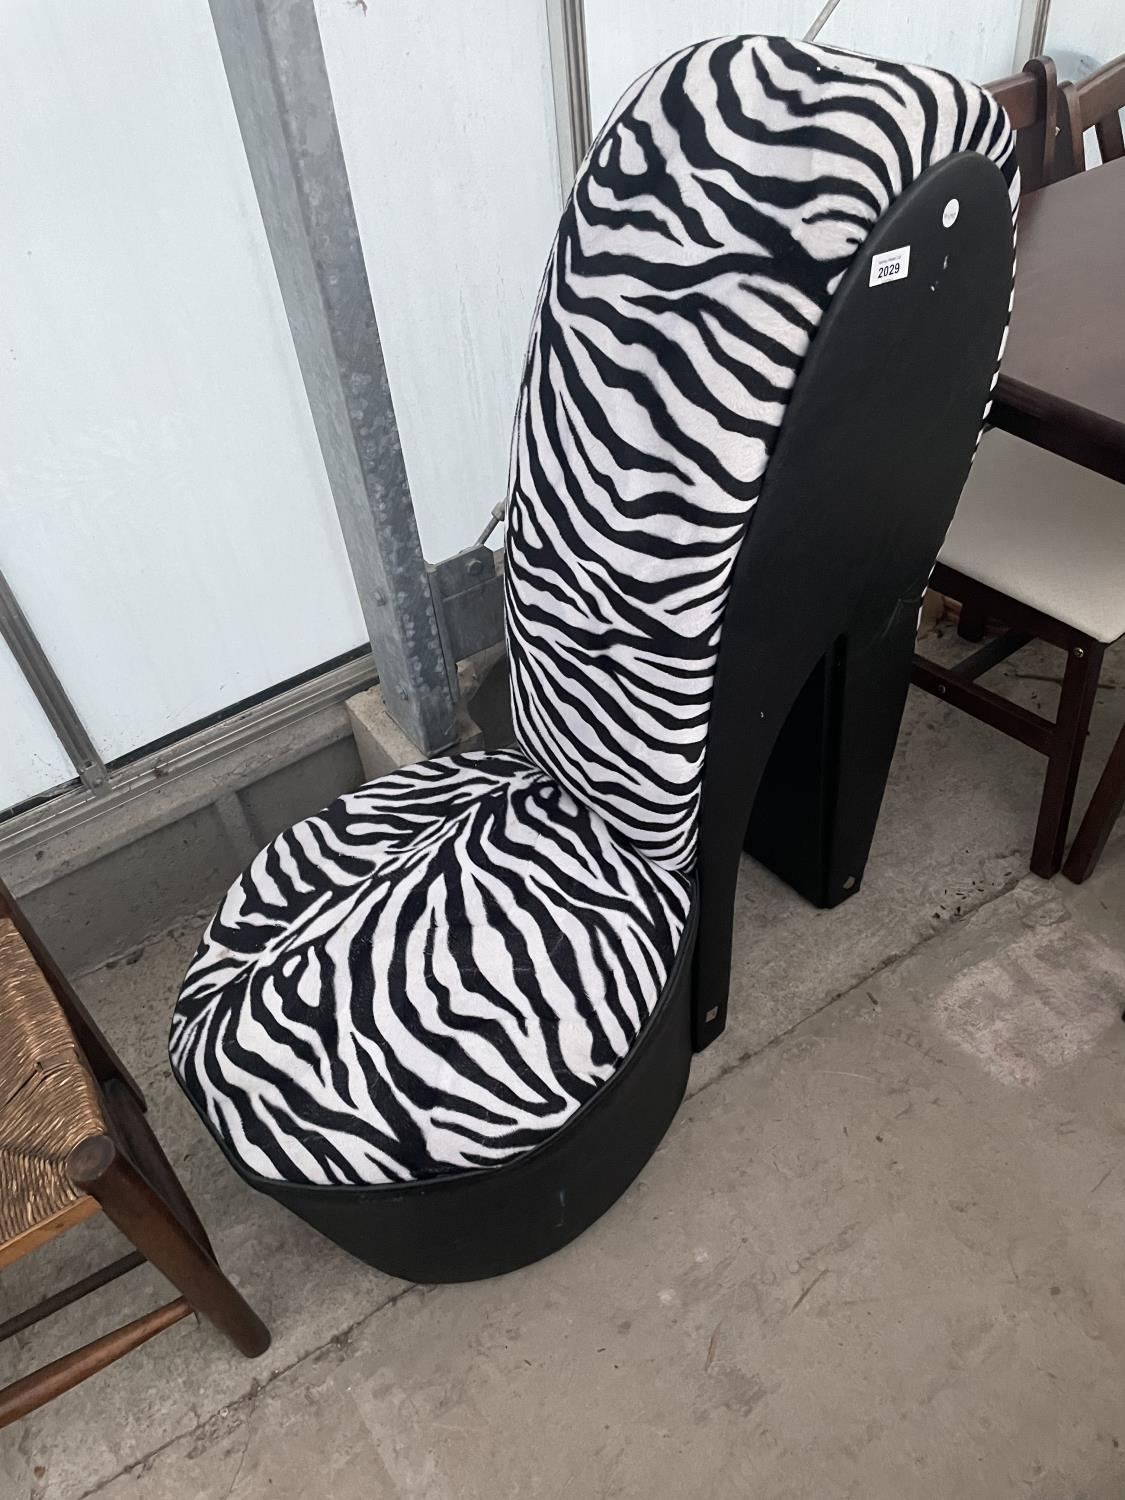 A FEATURE CHAIR IN THE FORM OF A HIGH HEEL SHOE WITH ZEBRA SKIN DESIGN FINISH